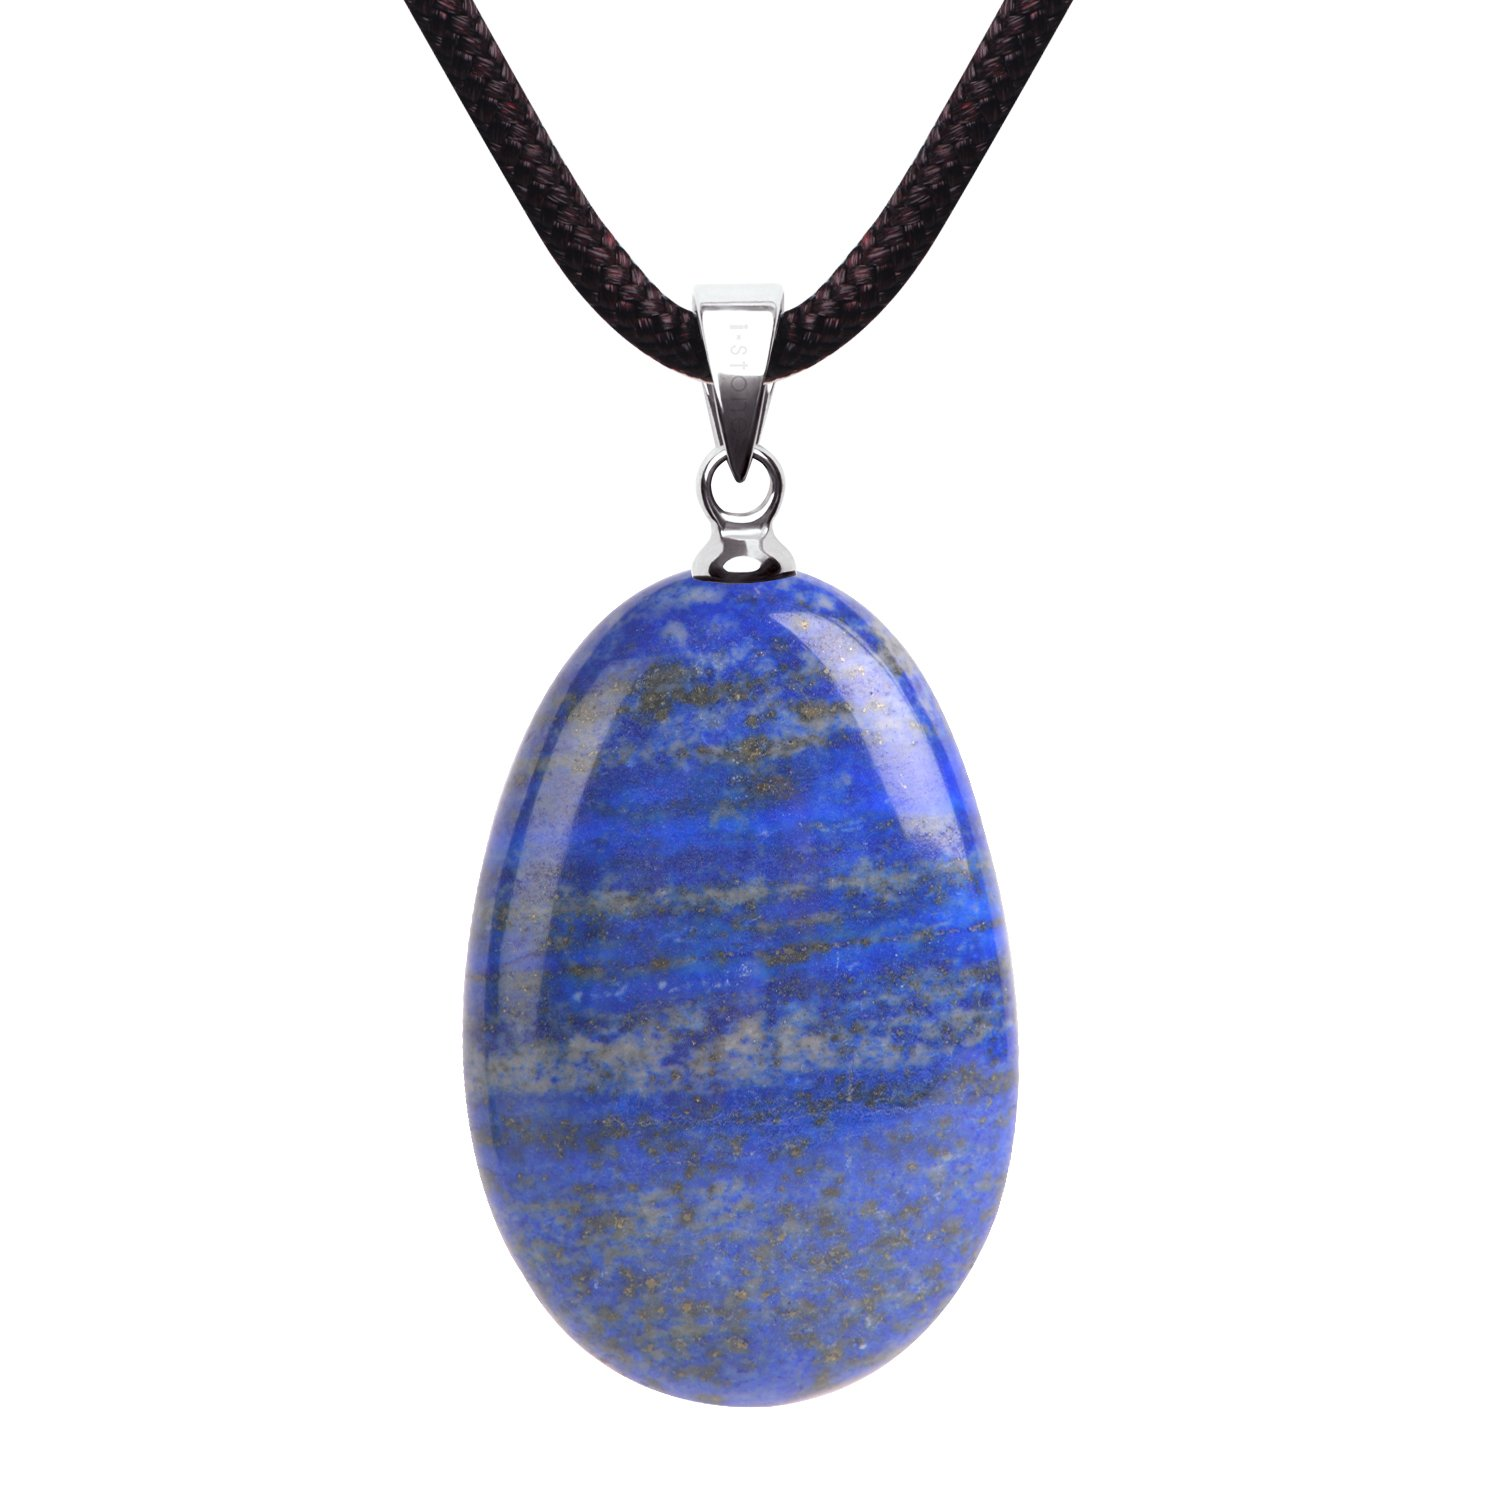 iSTONE Natural Gemstone Lapis Lazuli Water Drop Lucky Birth Stone Pendant Necklace for Men & Women Rope Chain 18 Inch